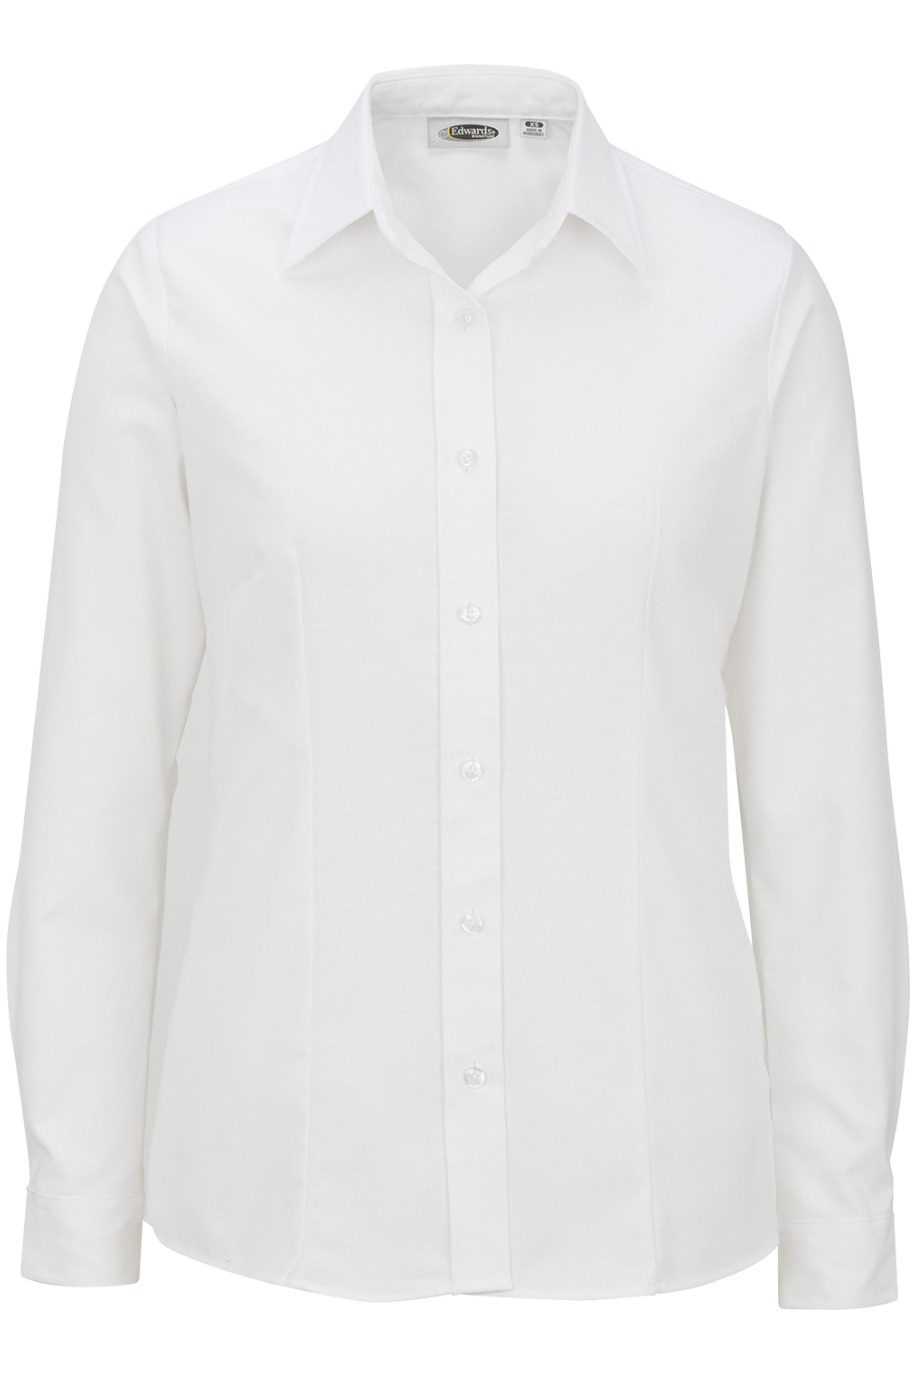 Edwards Garment 5078 - Oxford Long Sleeve Shirt